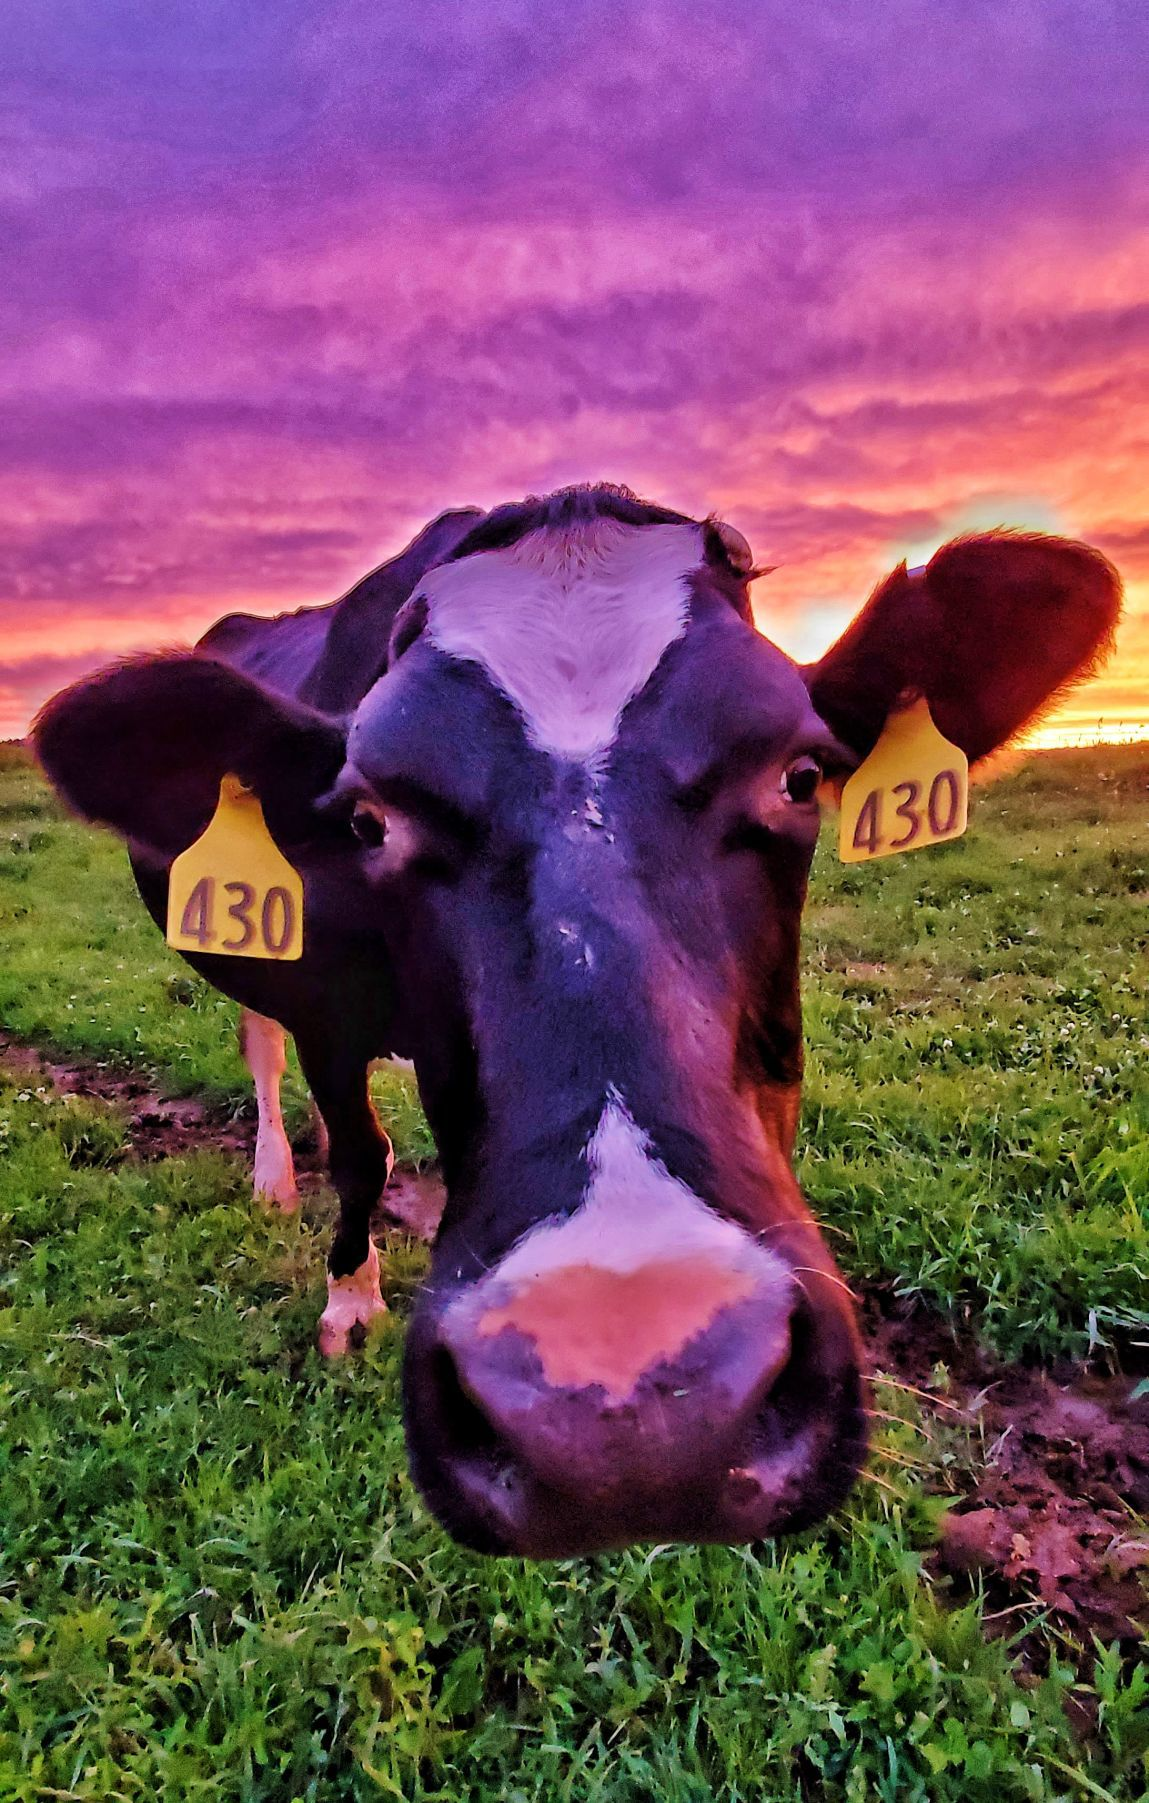 Cow inspects camera in field in front of setting sun